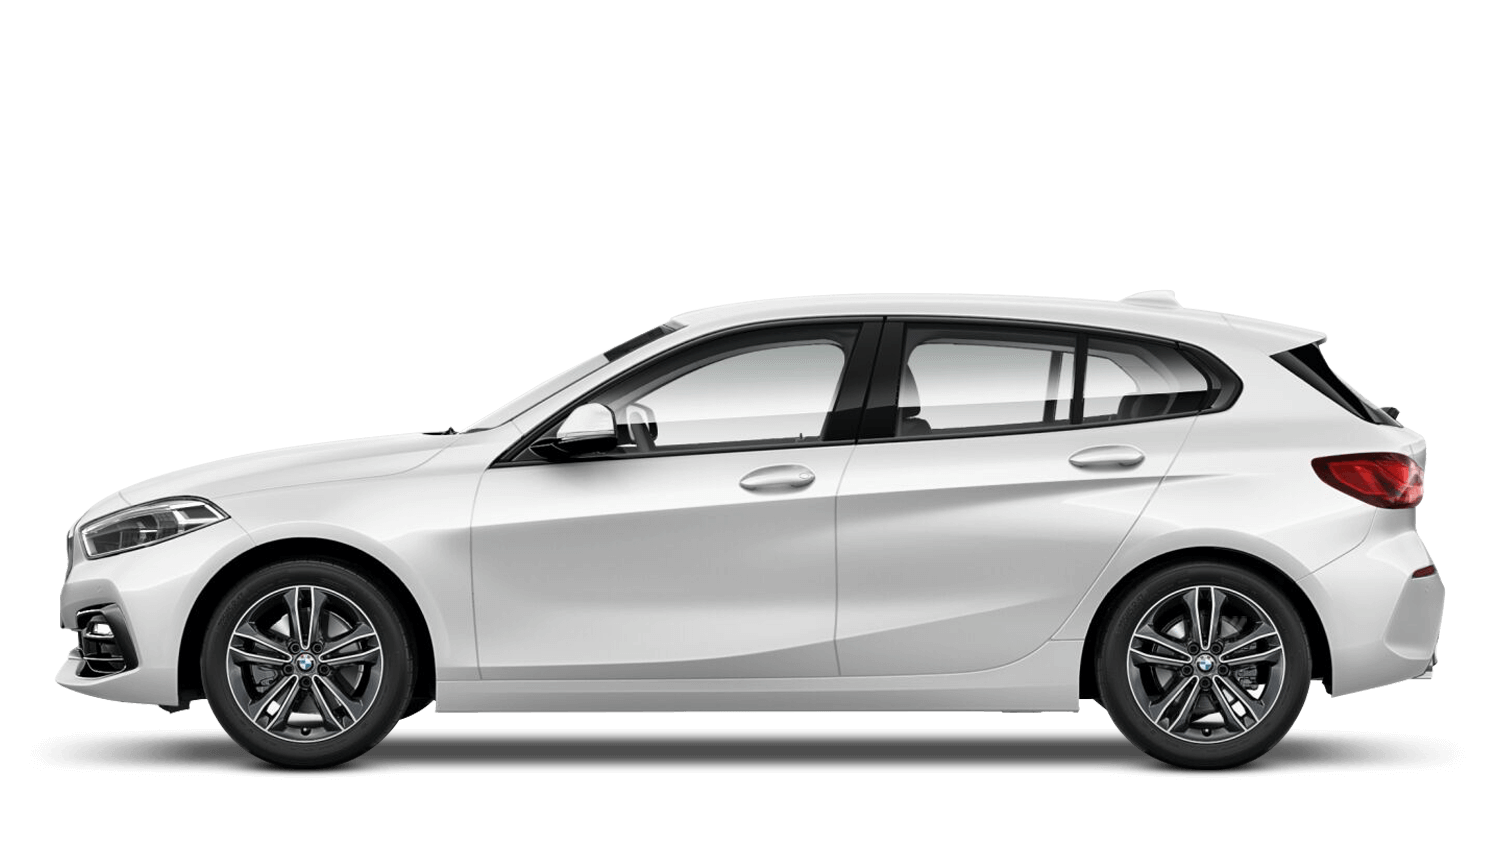 Mineral White BMW 1 Series Sports Hatch